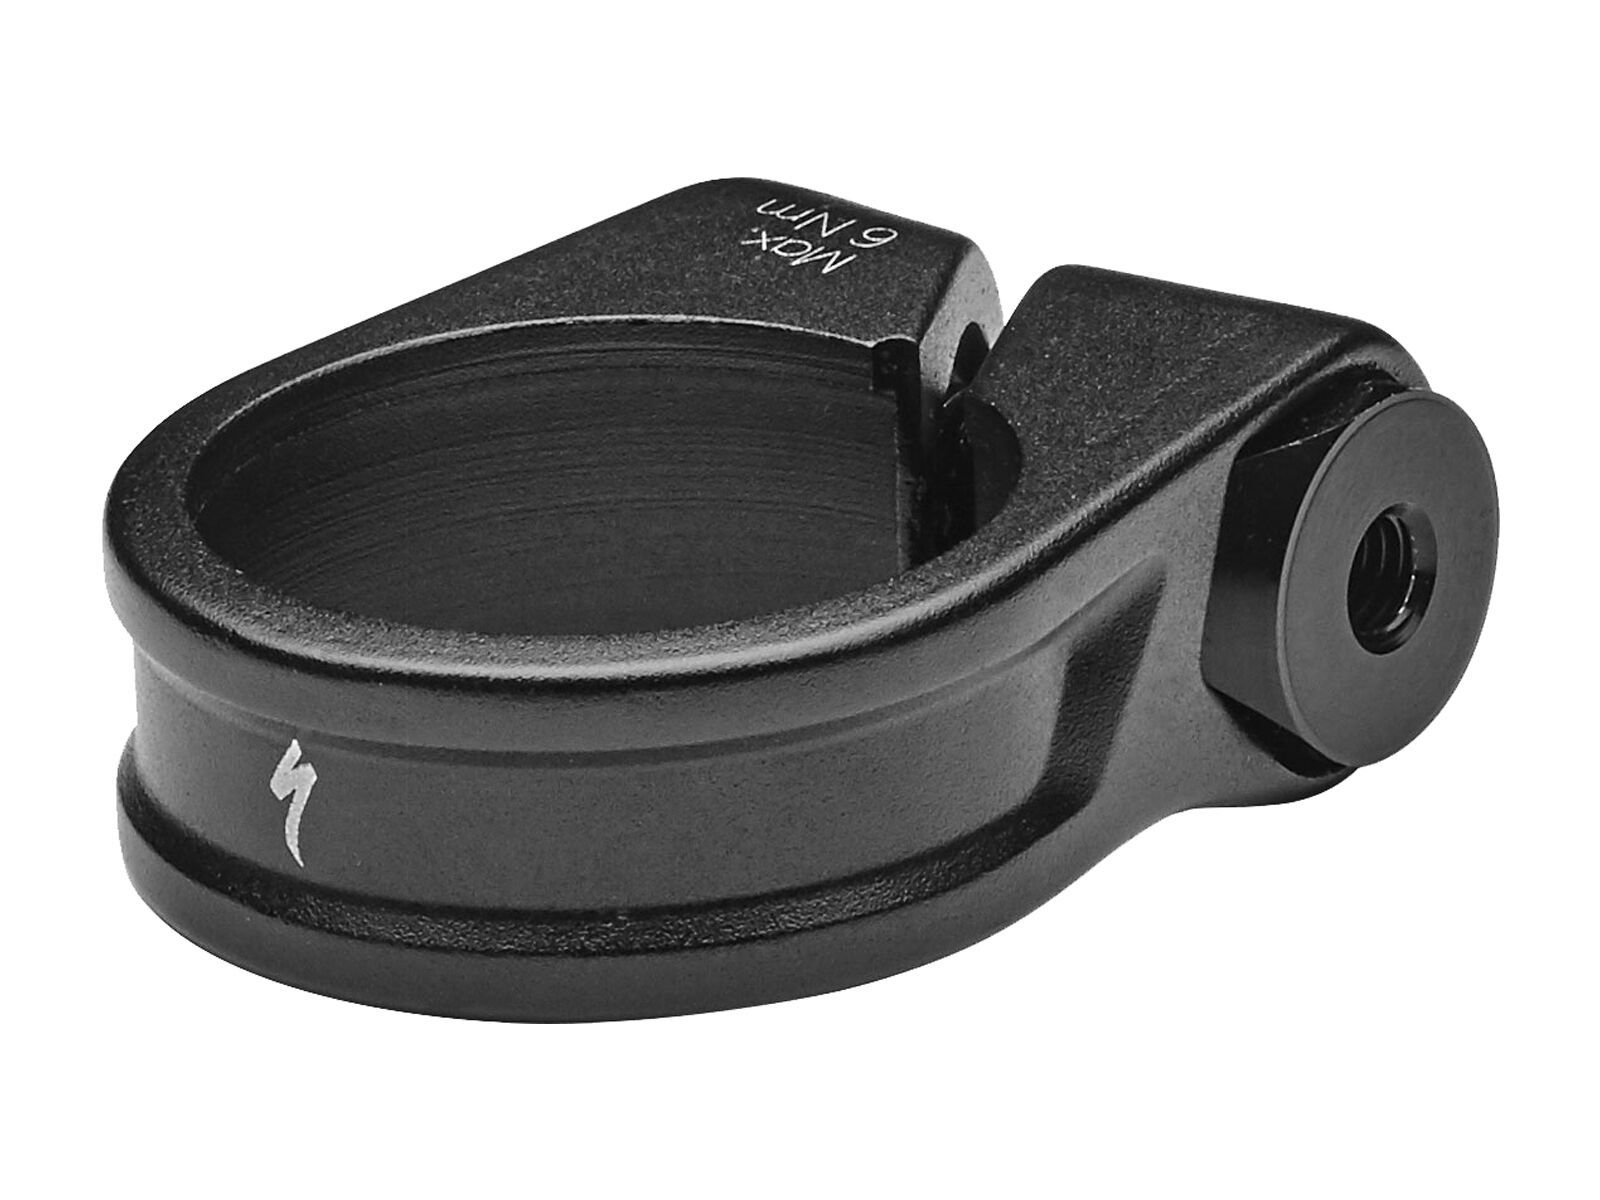 Specialized Specialized Rear Rack Seat Collar - 32,6 mm black 28216-9052